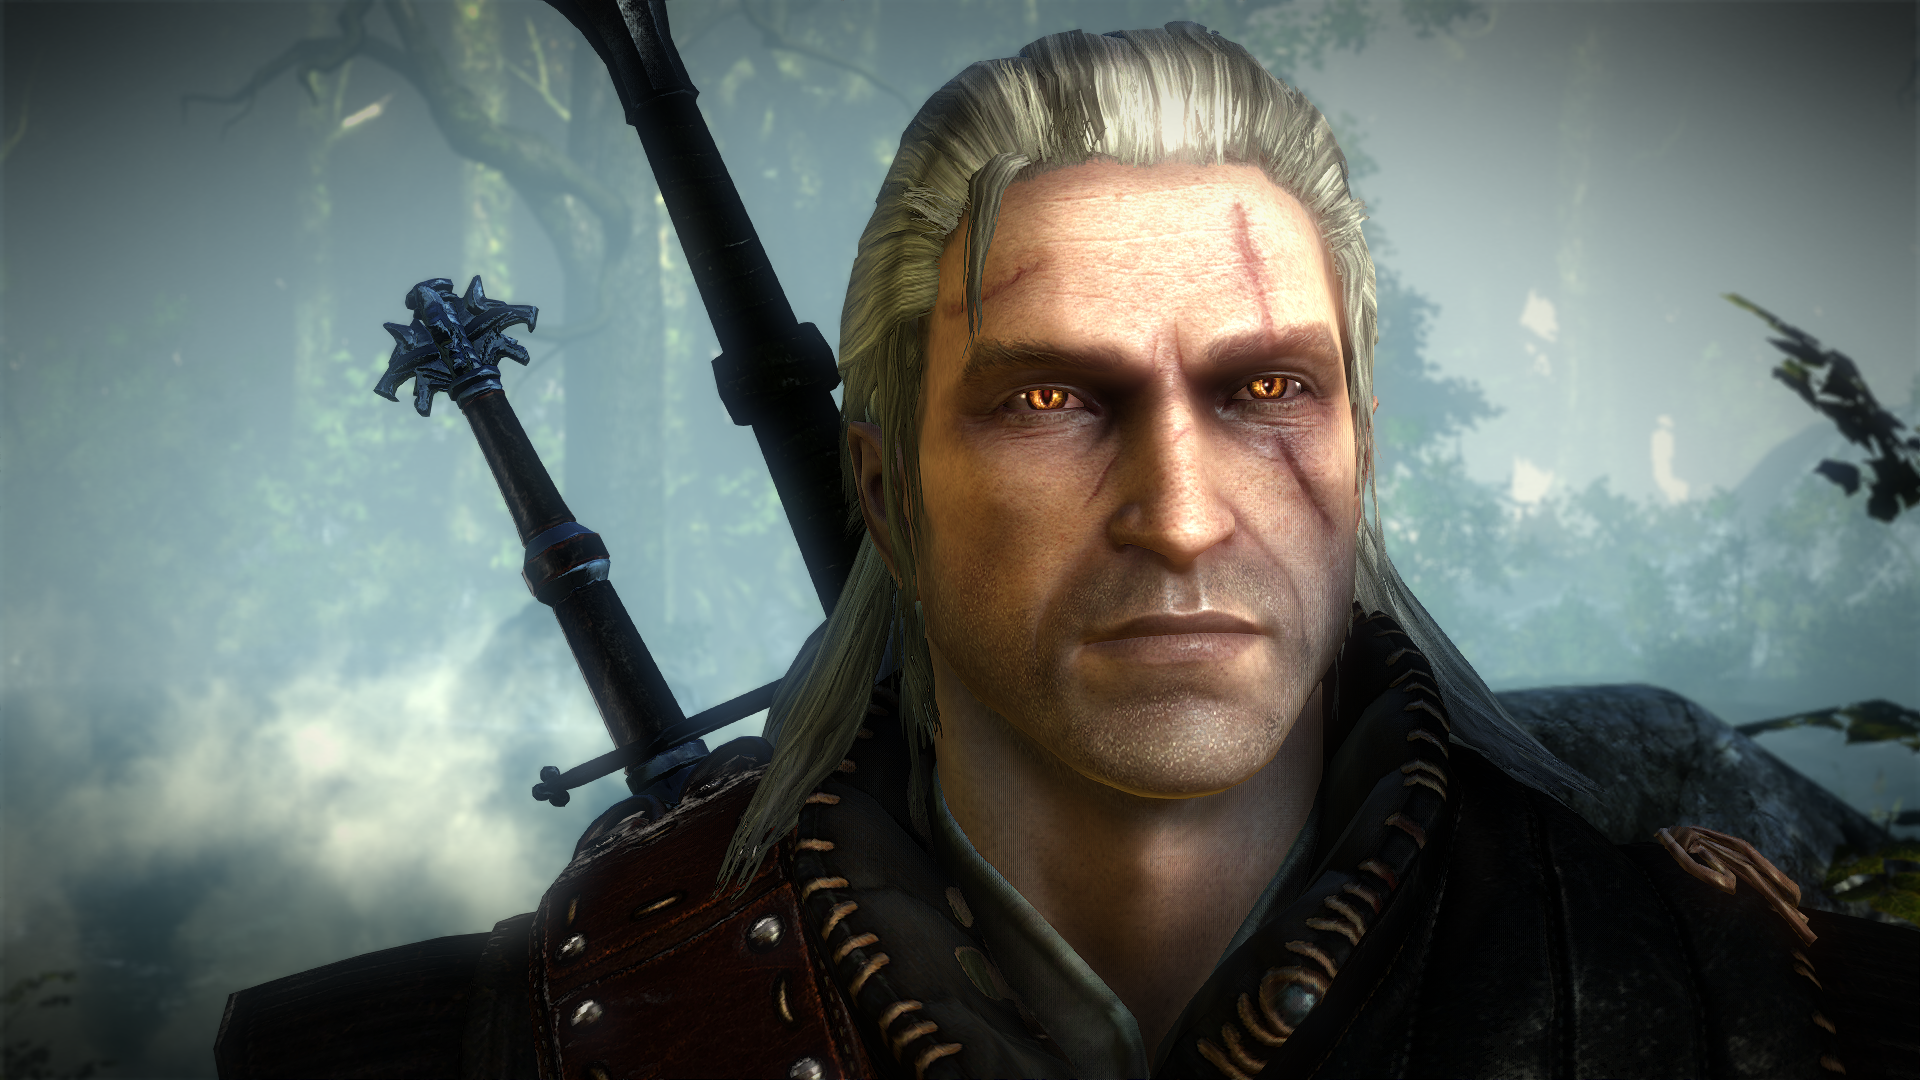 1791822-witcher2201105191011188.png